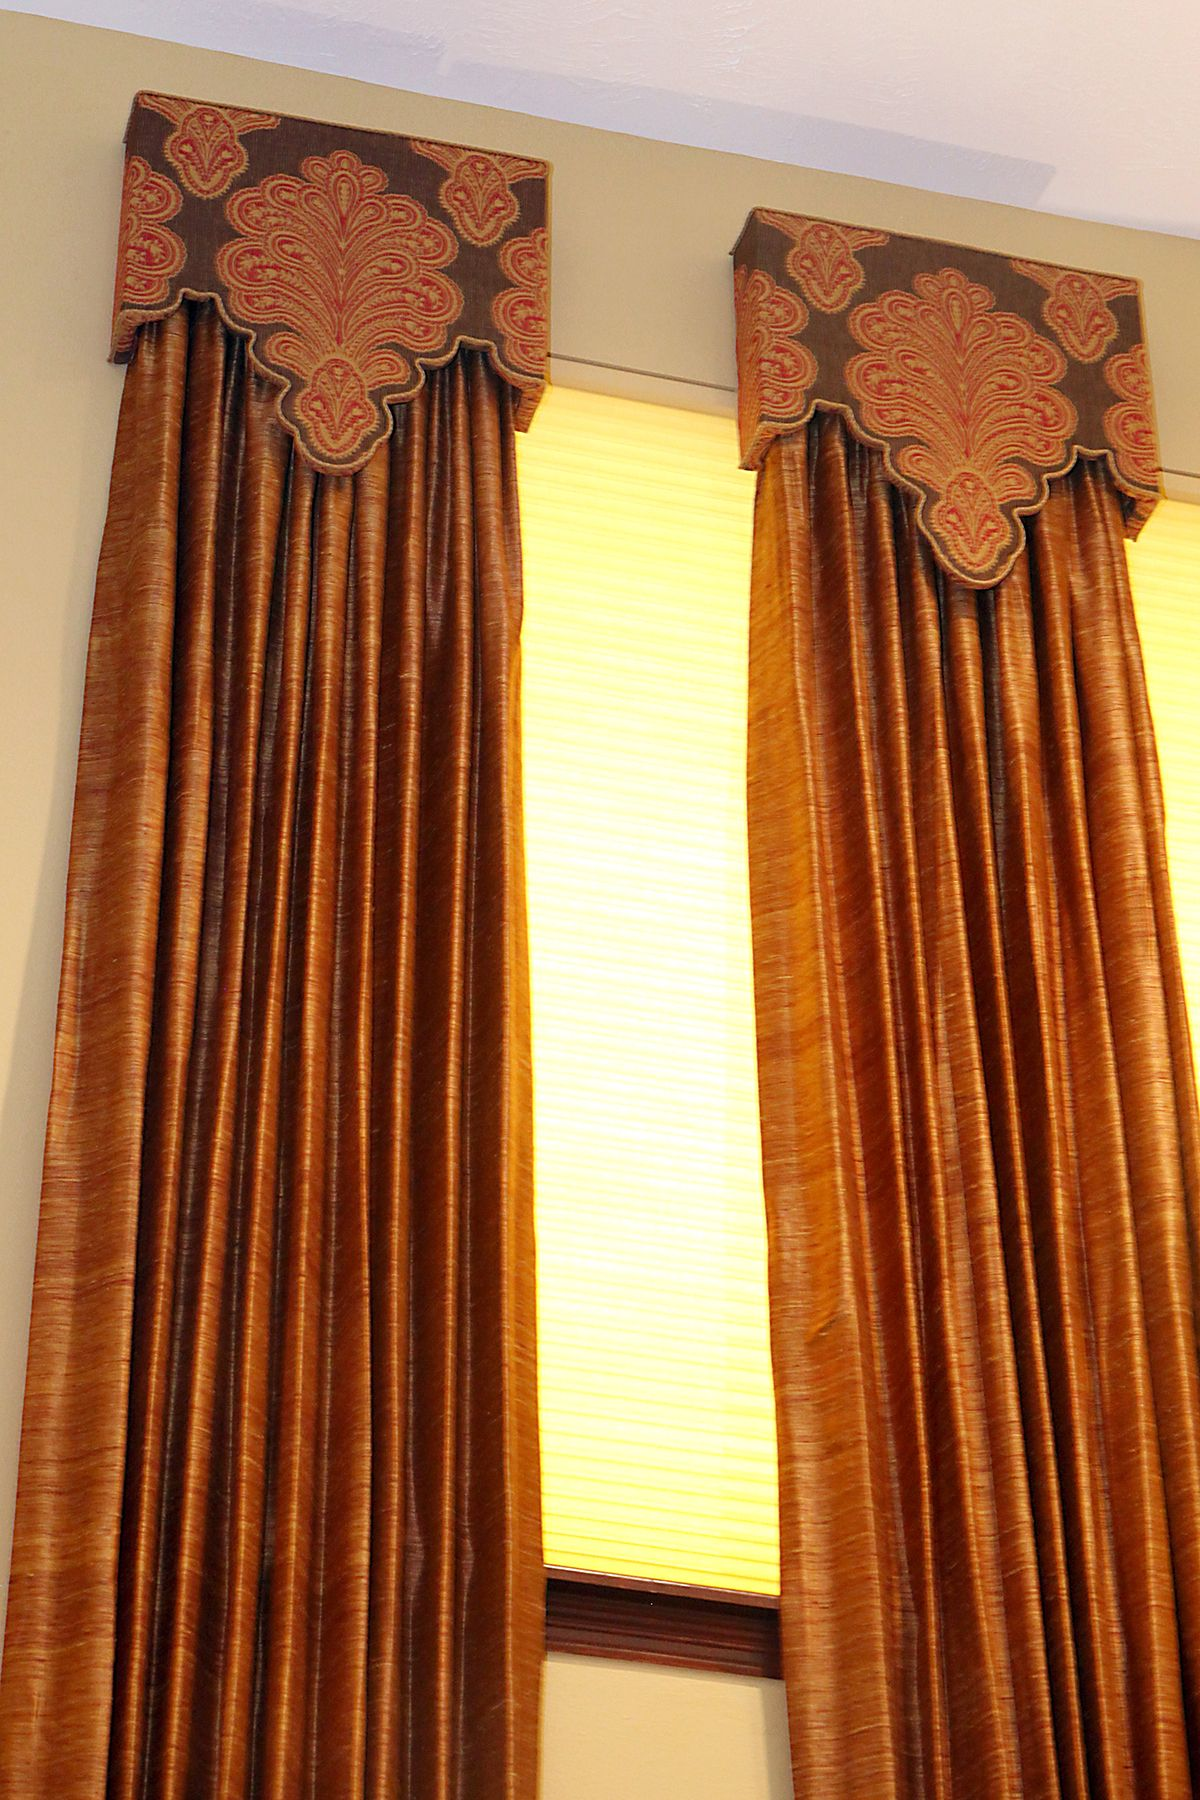 A Closer Look At These Custom Cornices Which Are Uniquely Shaped Around The Fabrics Design De Simple Window Treatments Diy Window Treatments Window Treatments